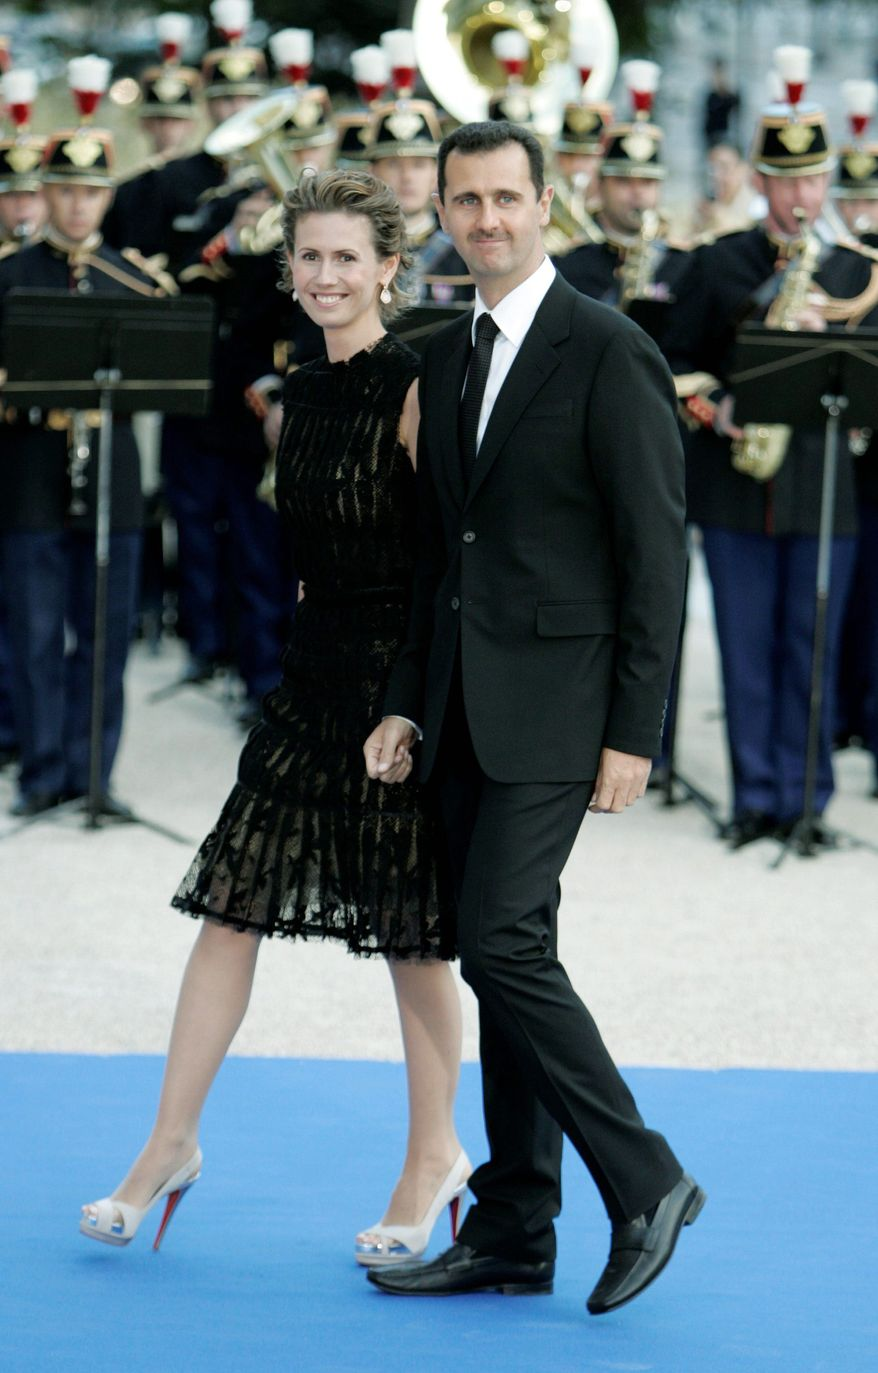 Syrian President Bashar Assad and wife Asma arrive for a formal dinner after a Mediterranean summit meeting in July 2008 at the Petit Palais in Paris. As Syria's bloodshed worsens, the country's British-born first lady has become an object of contempt. The EU has banned her from traveling in the countries. (Associated Press)